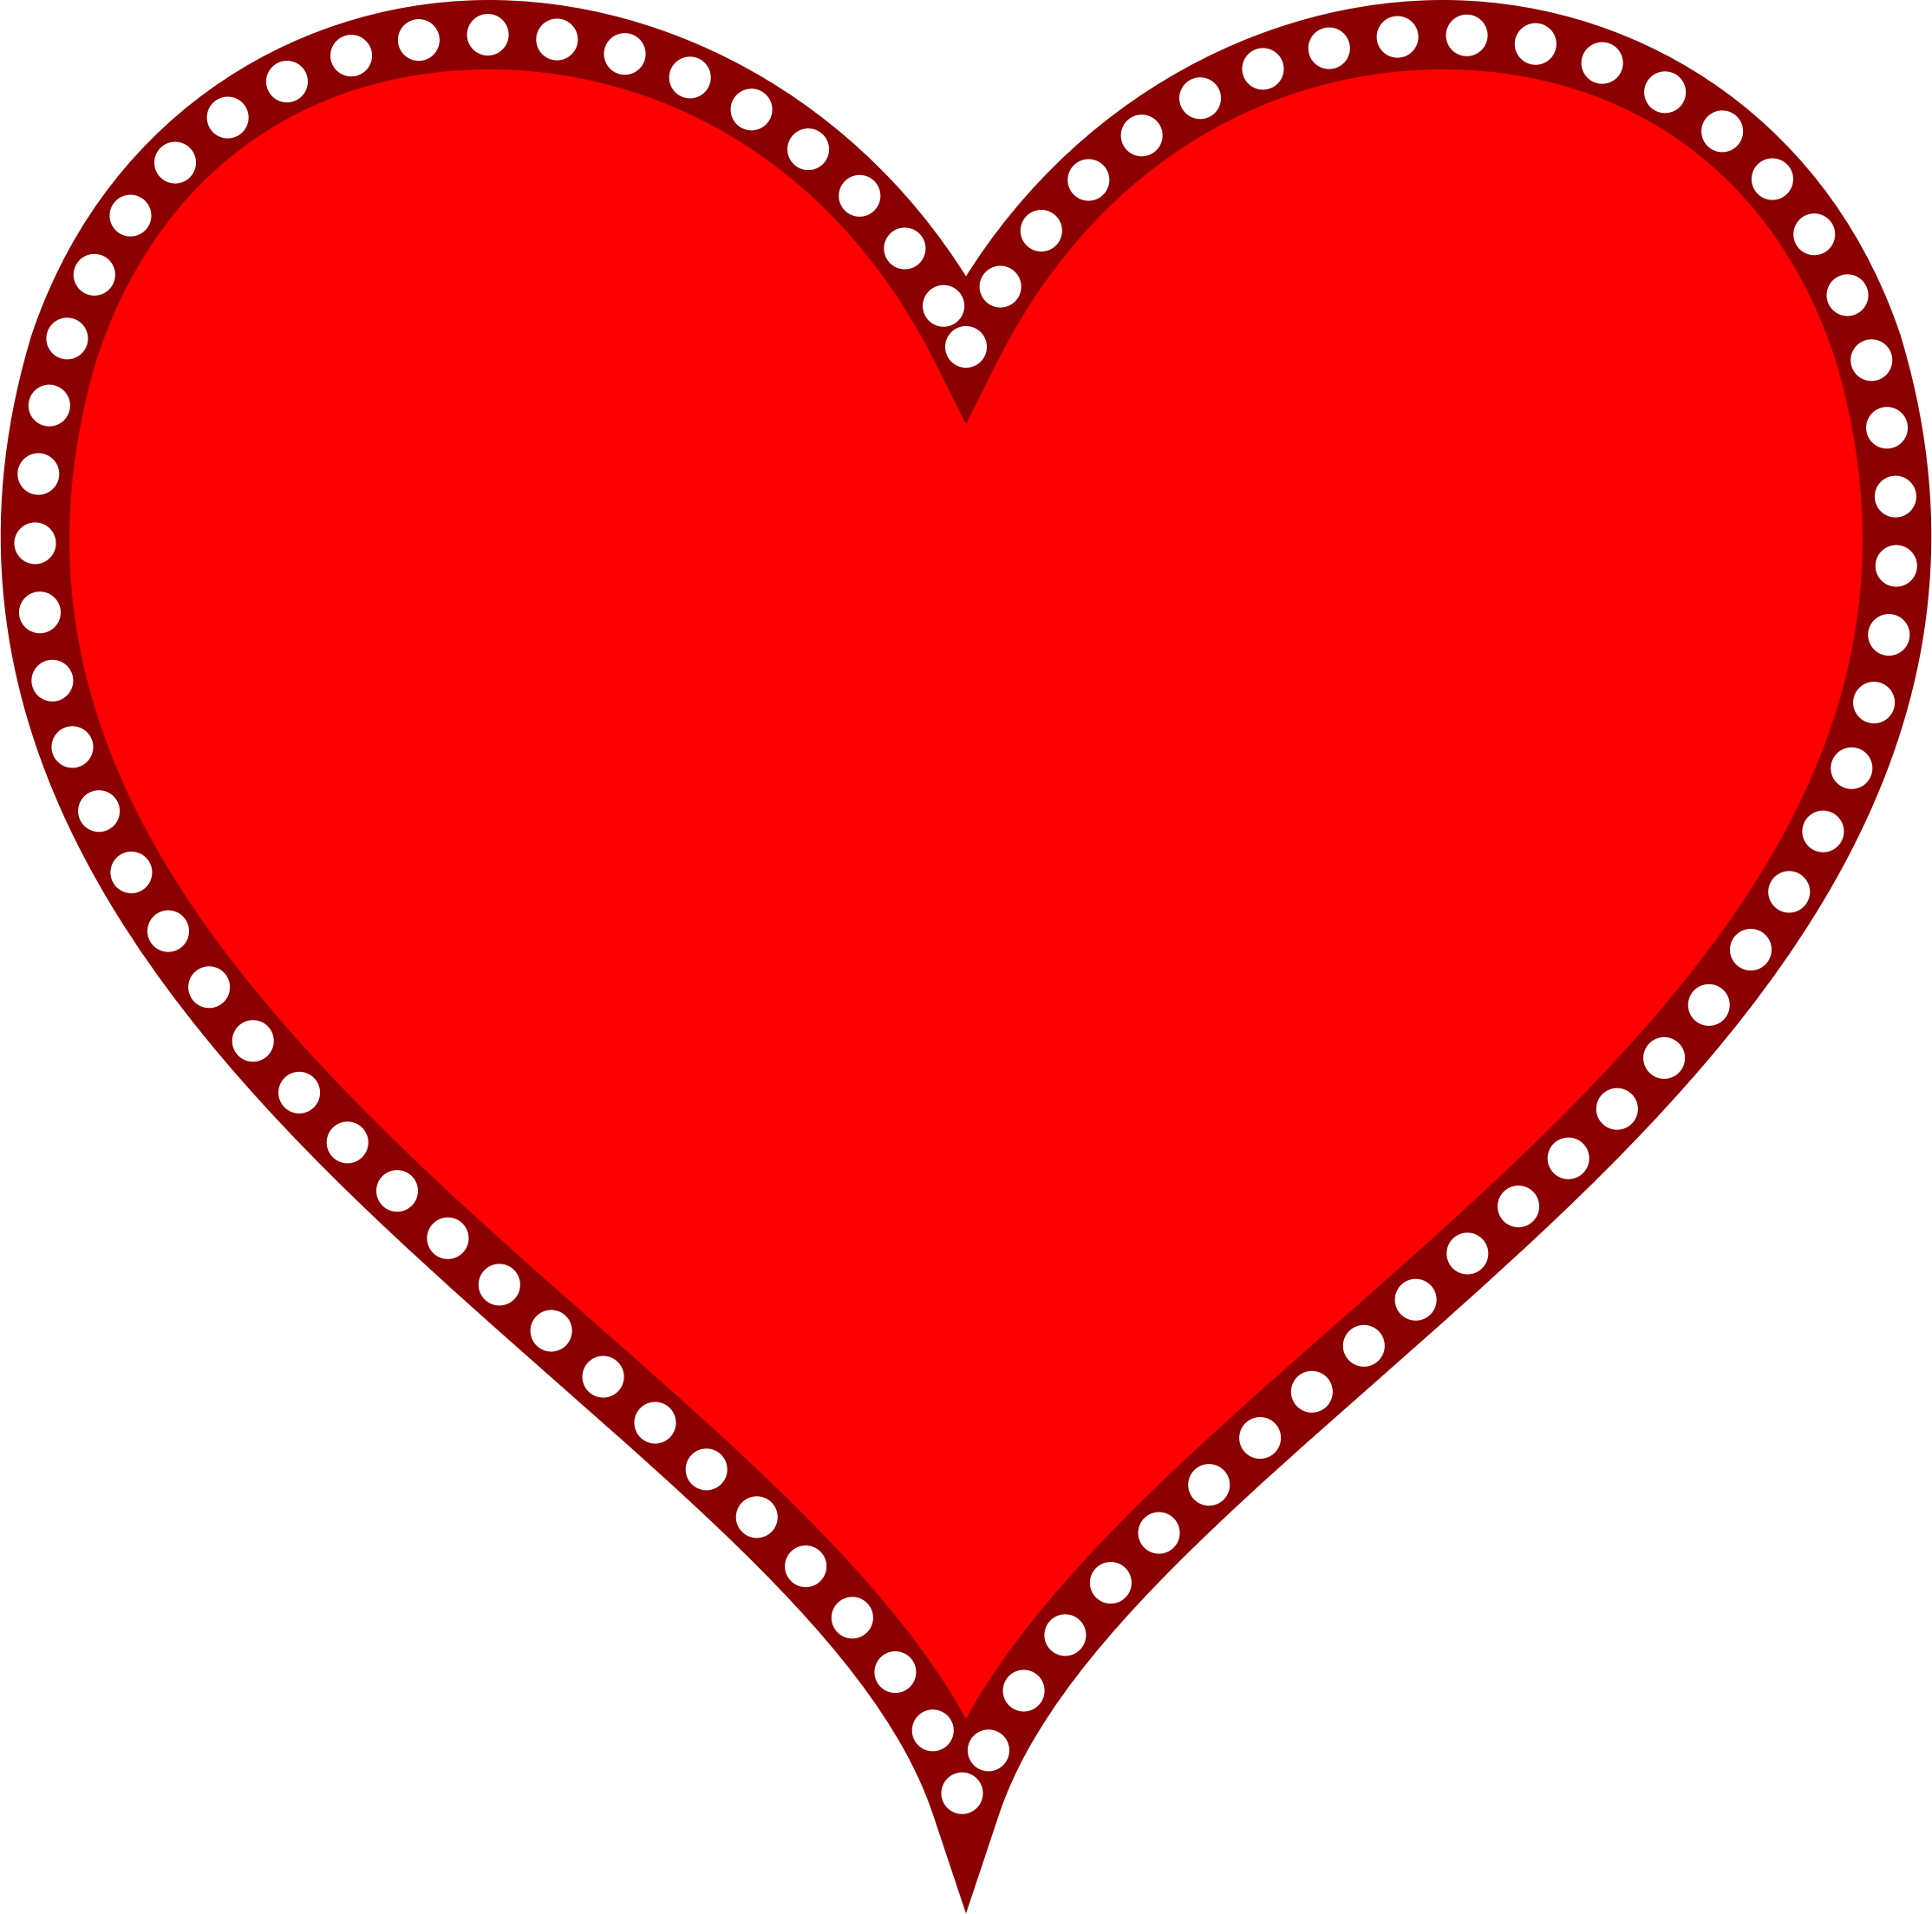 Animated heart clipart 3 » Clipart Station.